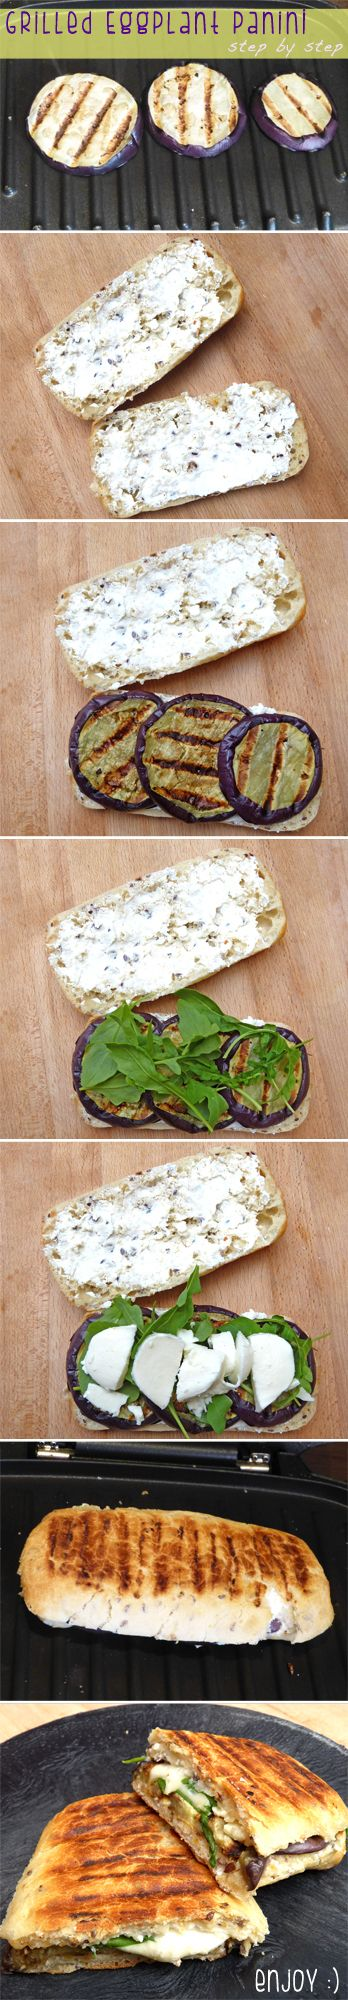 This vegetarian Grilled Eggplant Panini is full of Italian flavour and perfect for a quick but nutricious lunch!